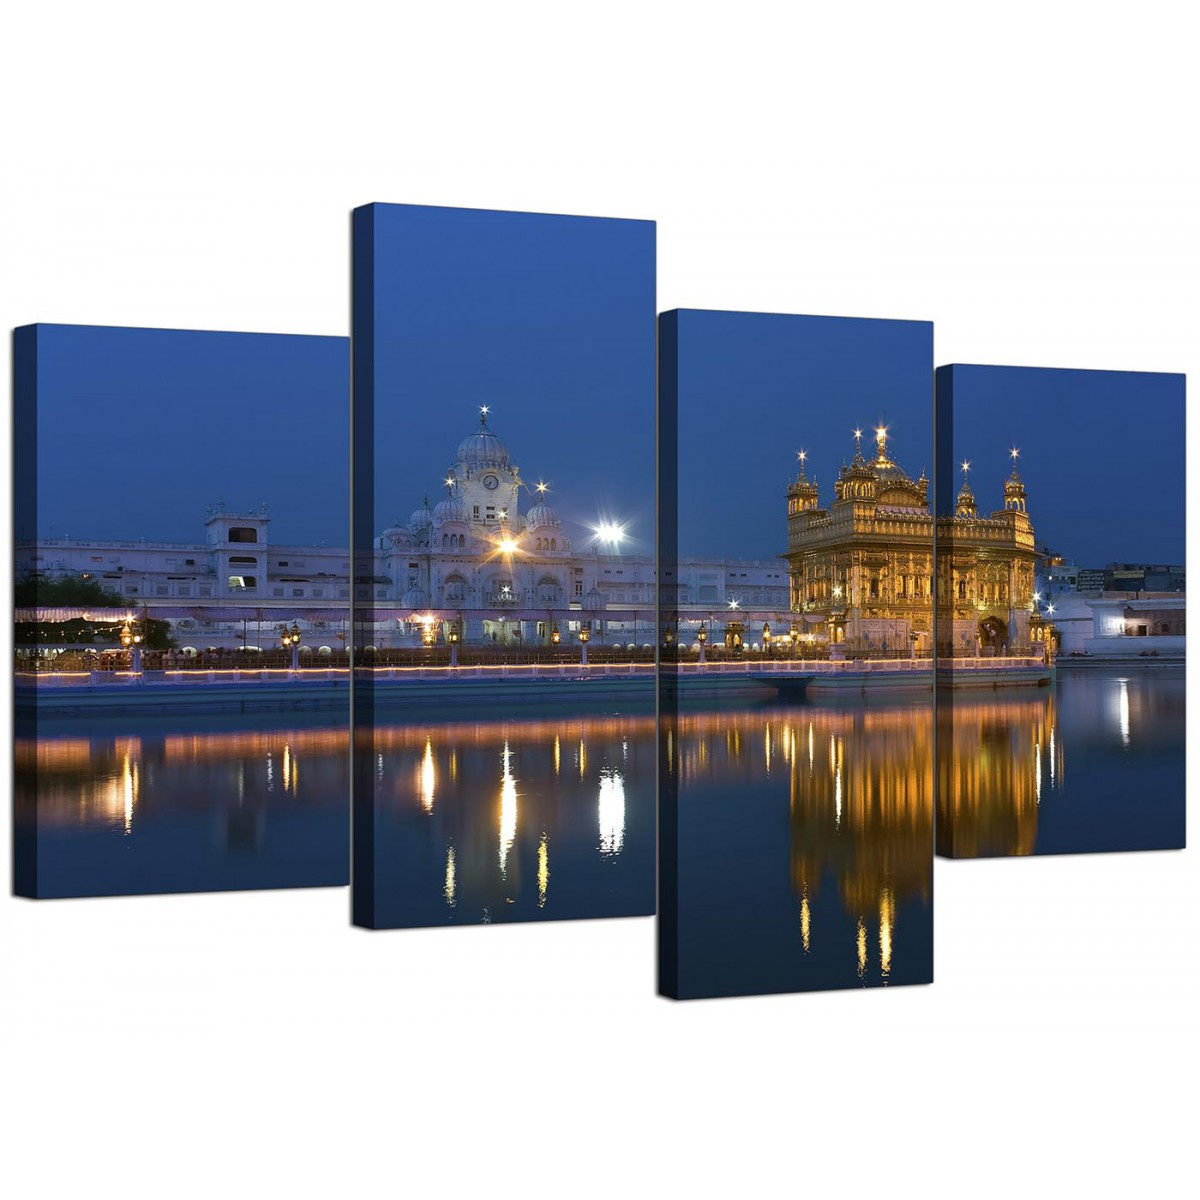 Sikh Canvas Wall Art Of Golden Temple Amritsar For A